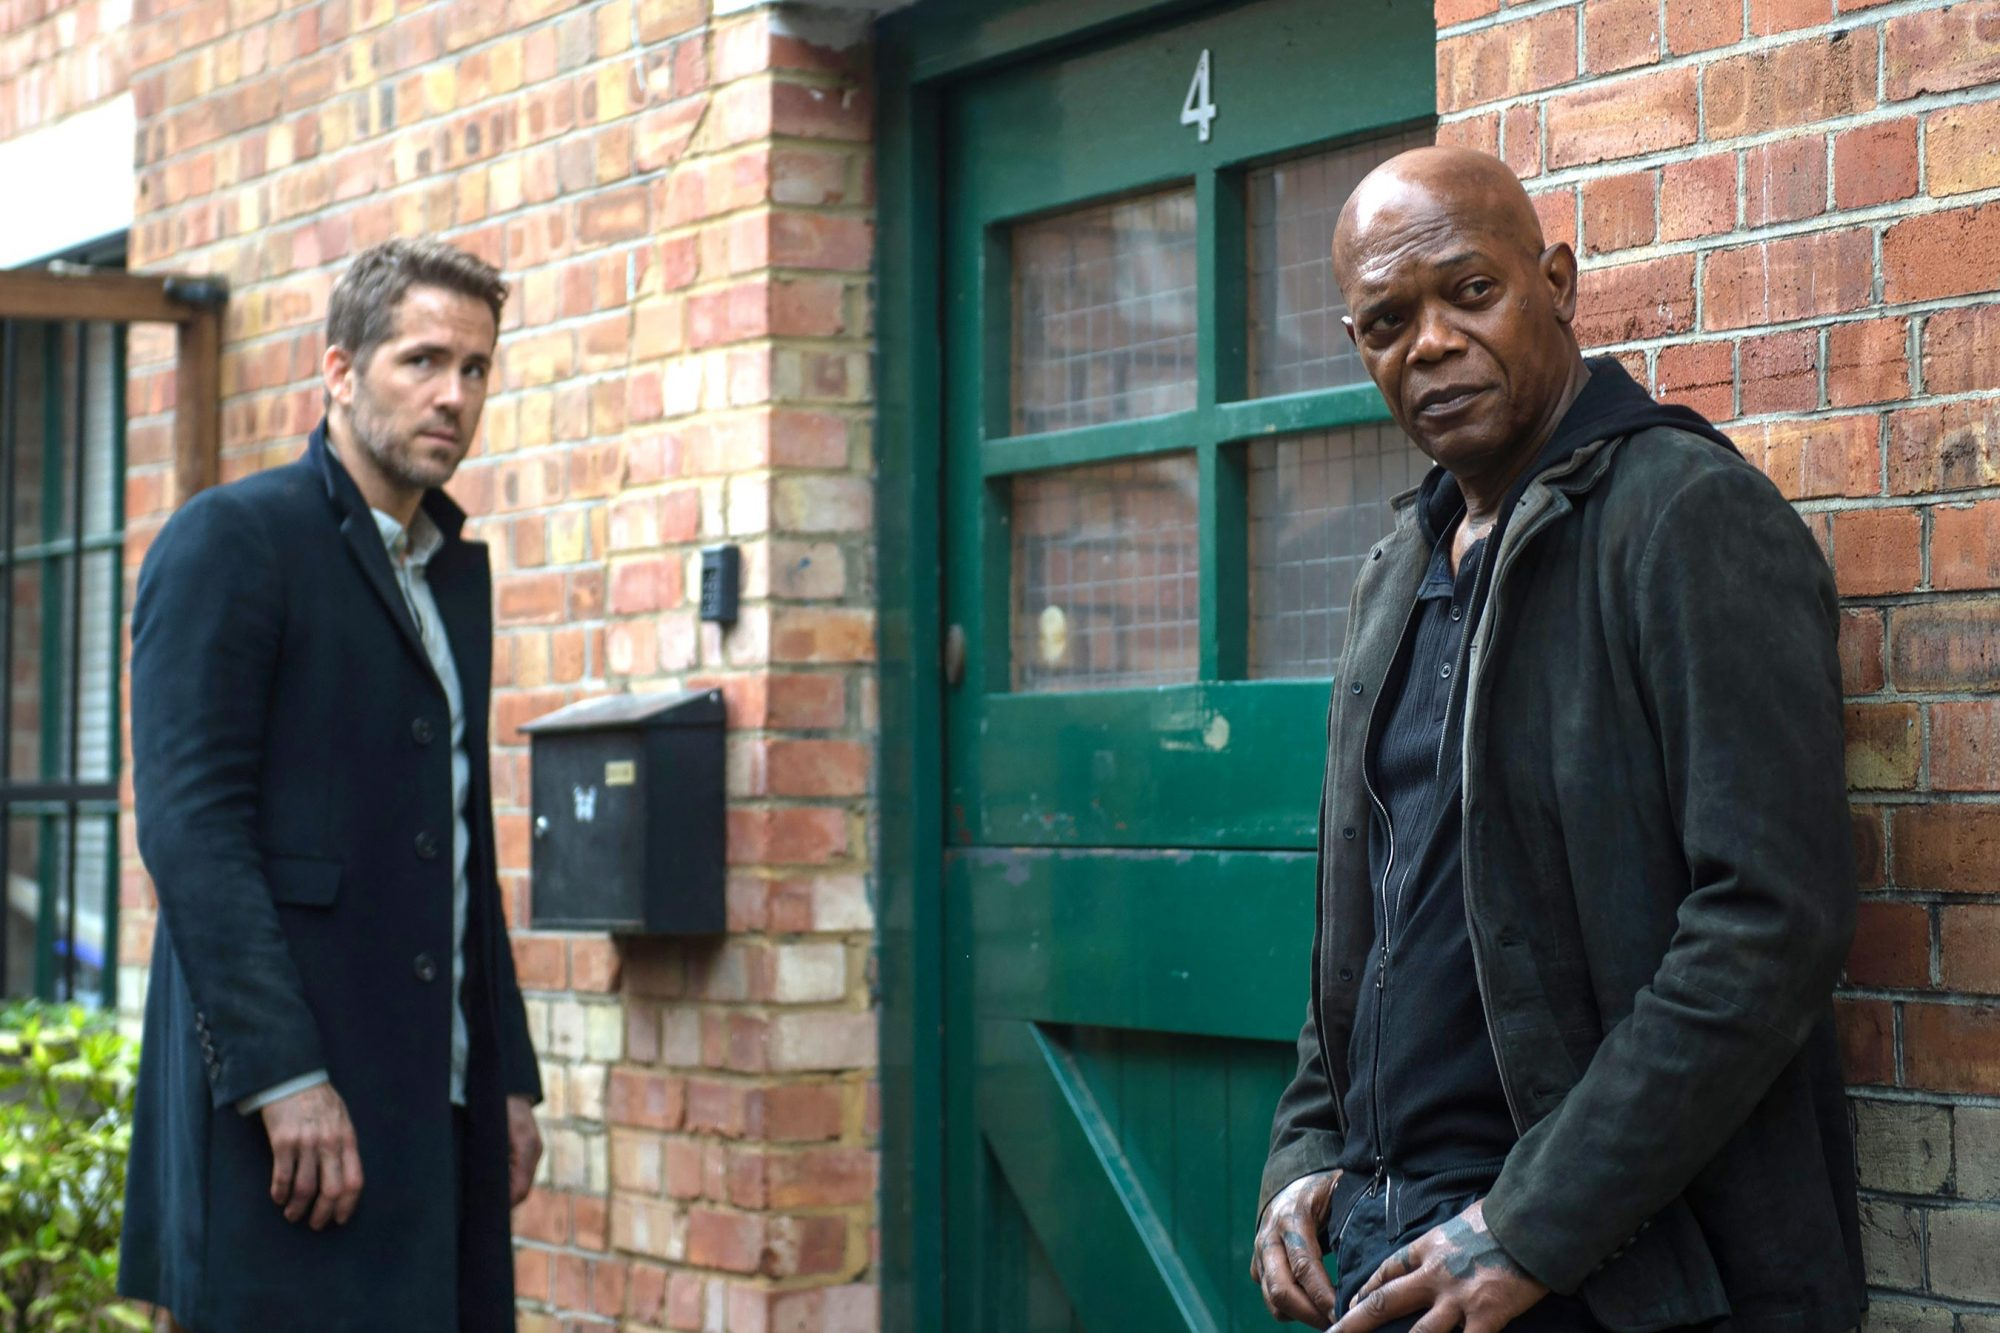 WINNER (AMONG LOSERS): The Hitman's Bodyguard